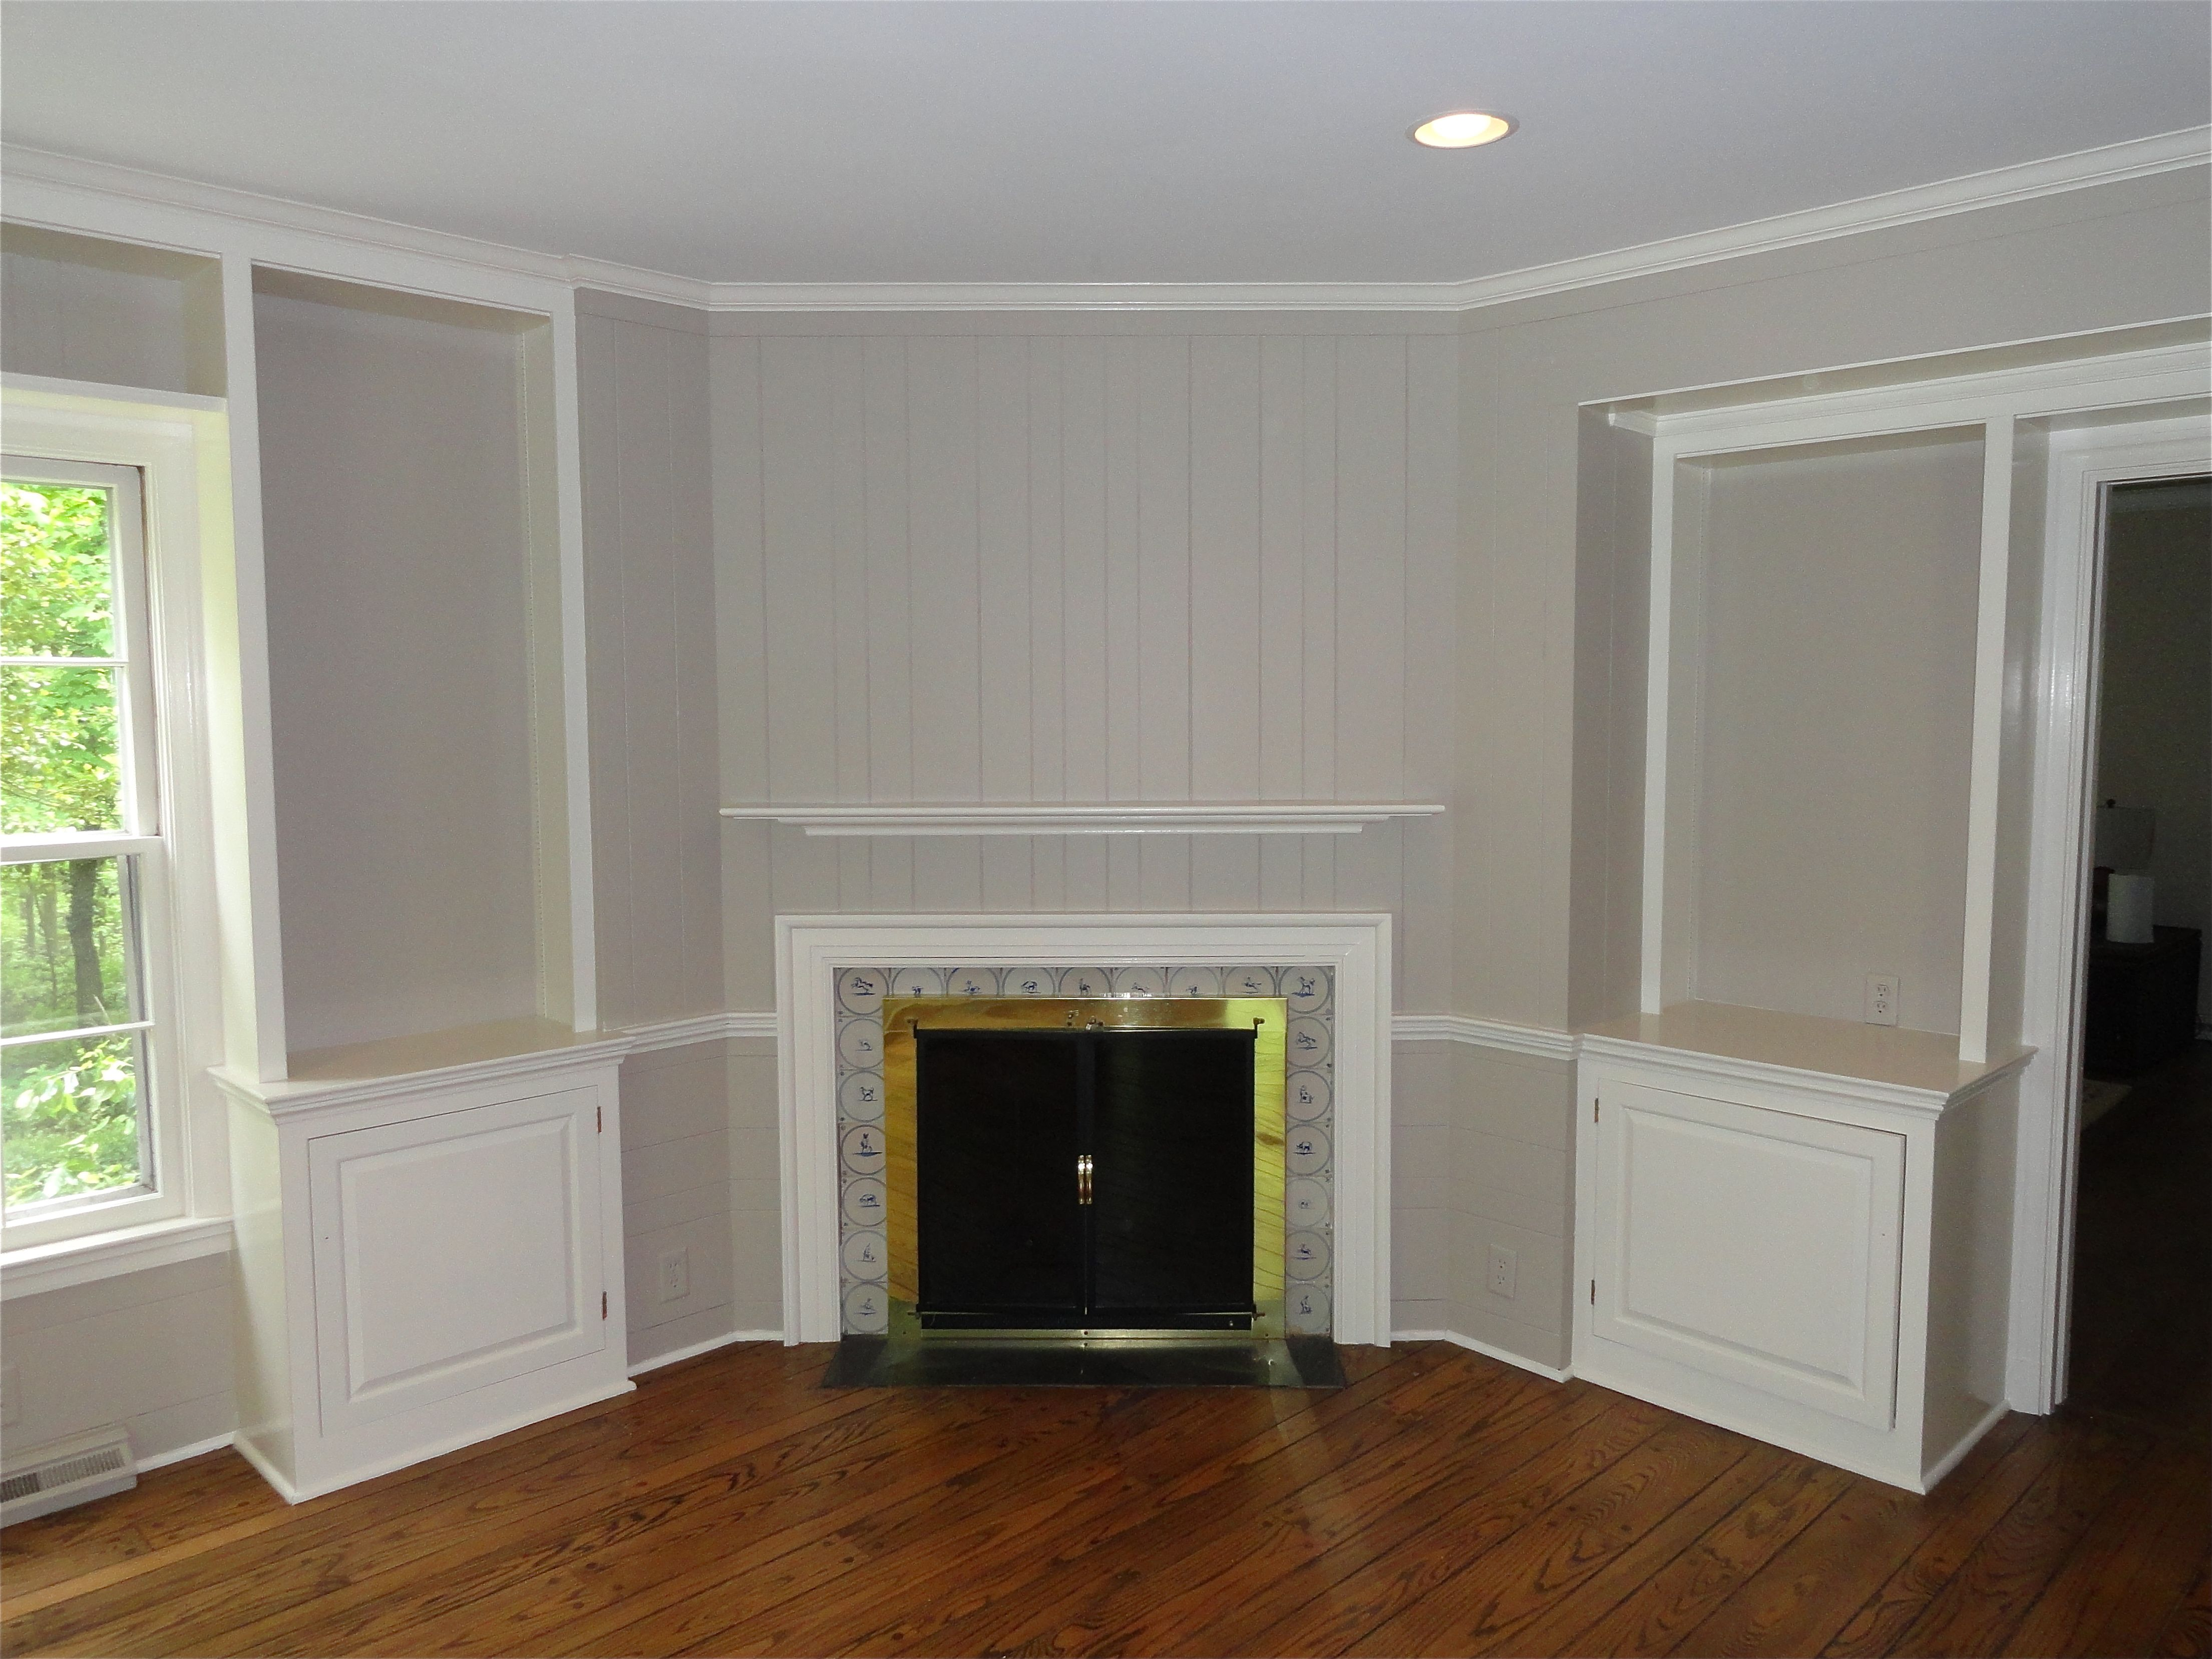 25 best ideas about painting wood paneling on pinterest paneling makeover wood paneling update and paint wood paneling